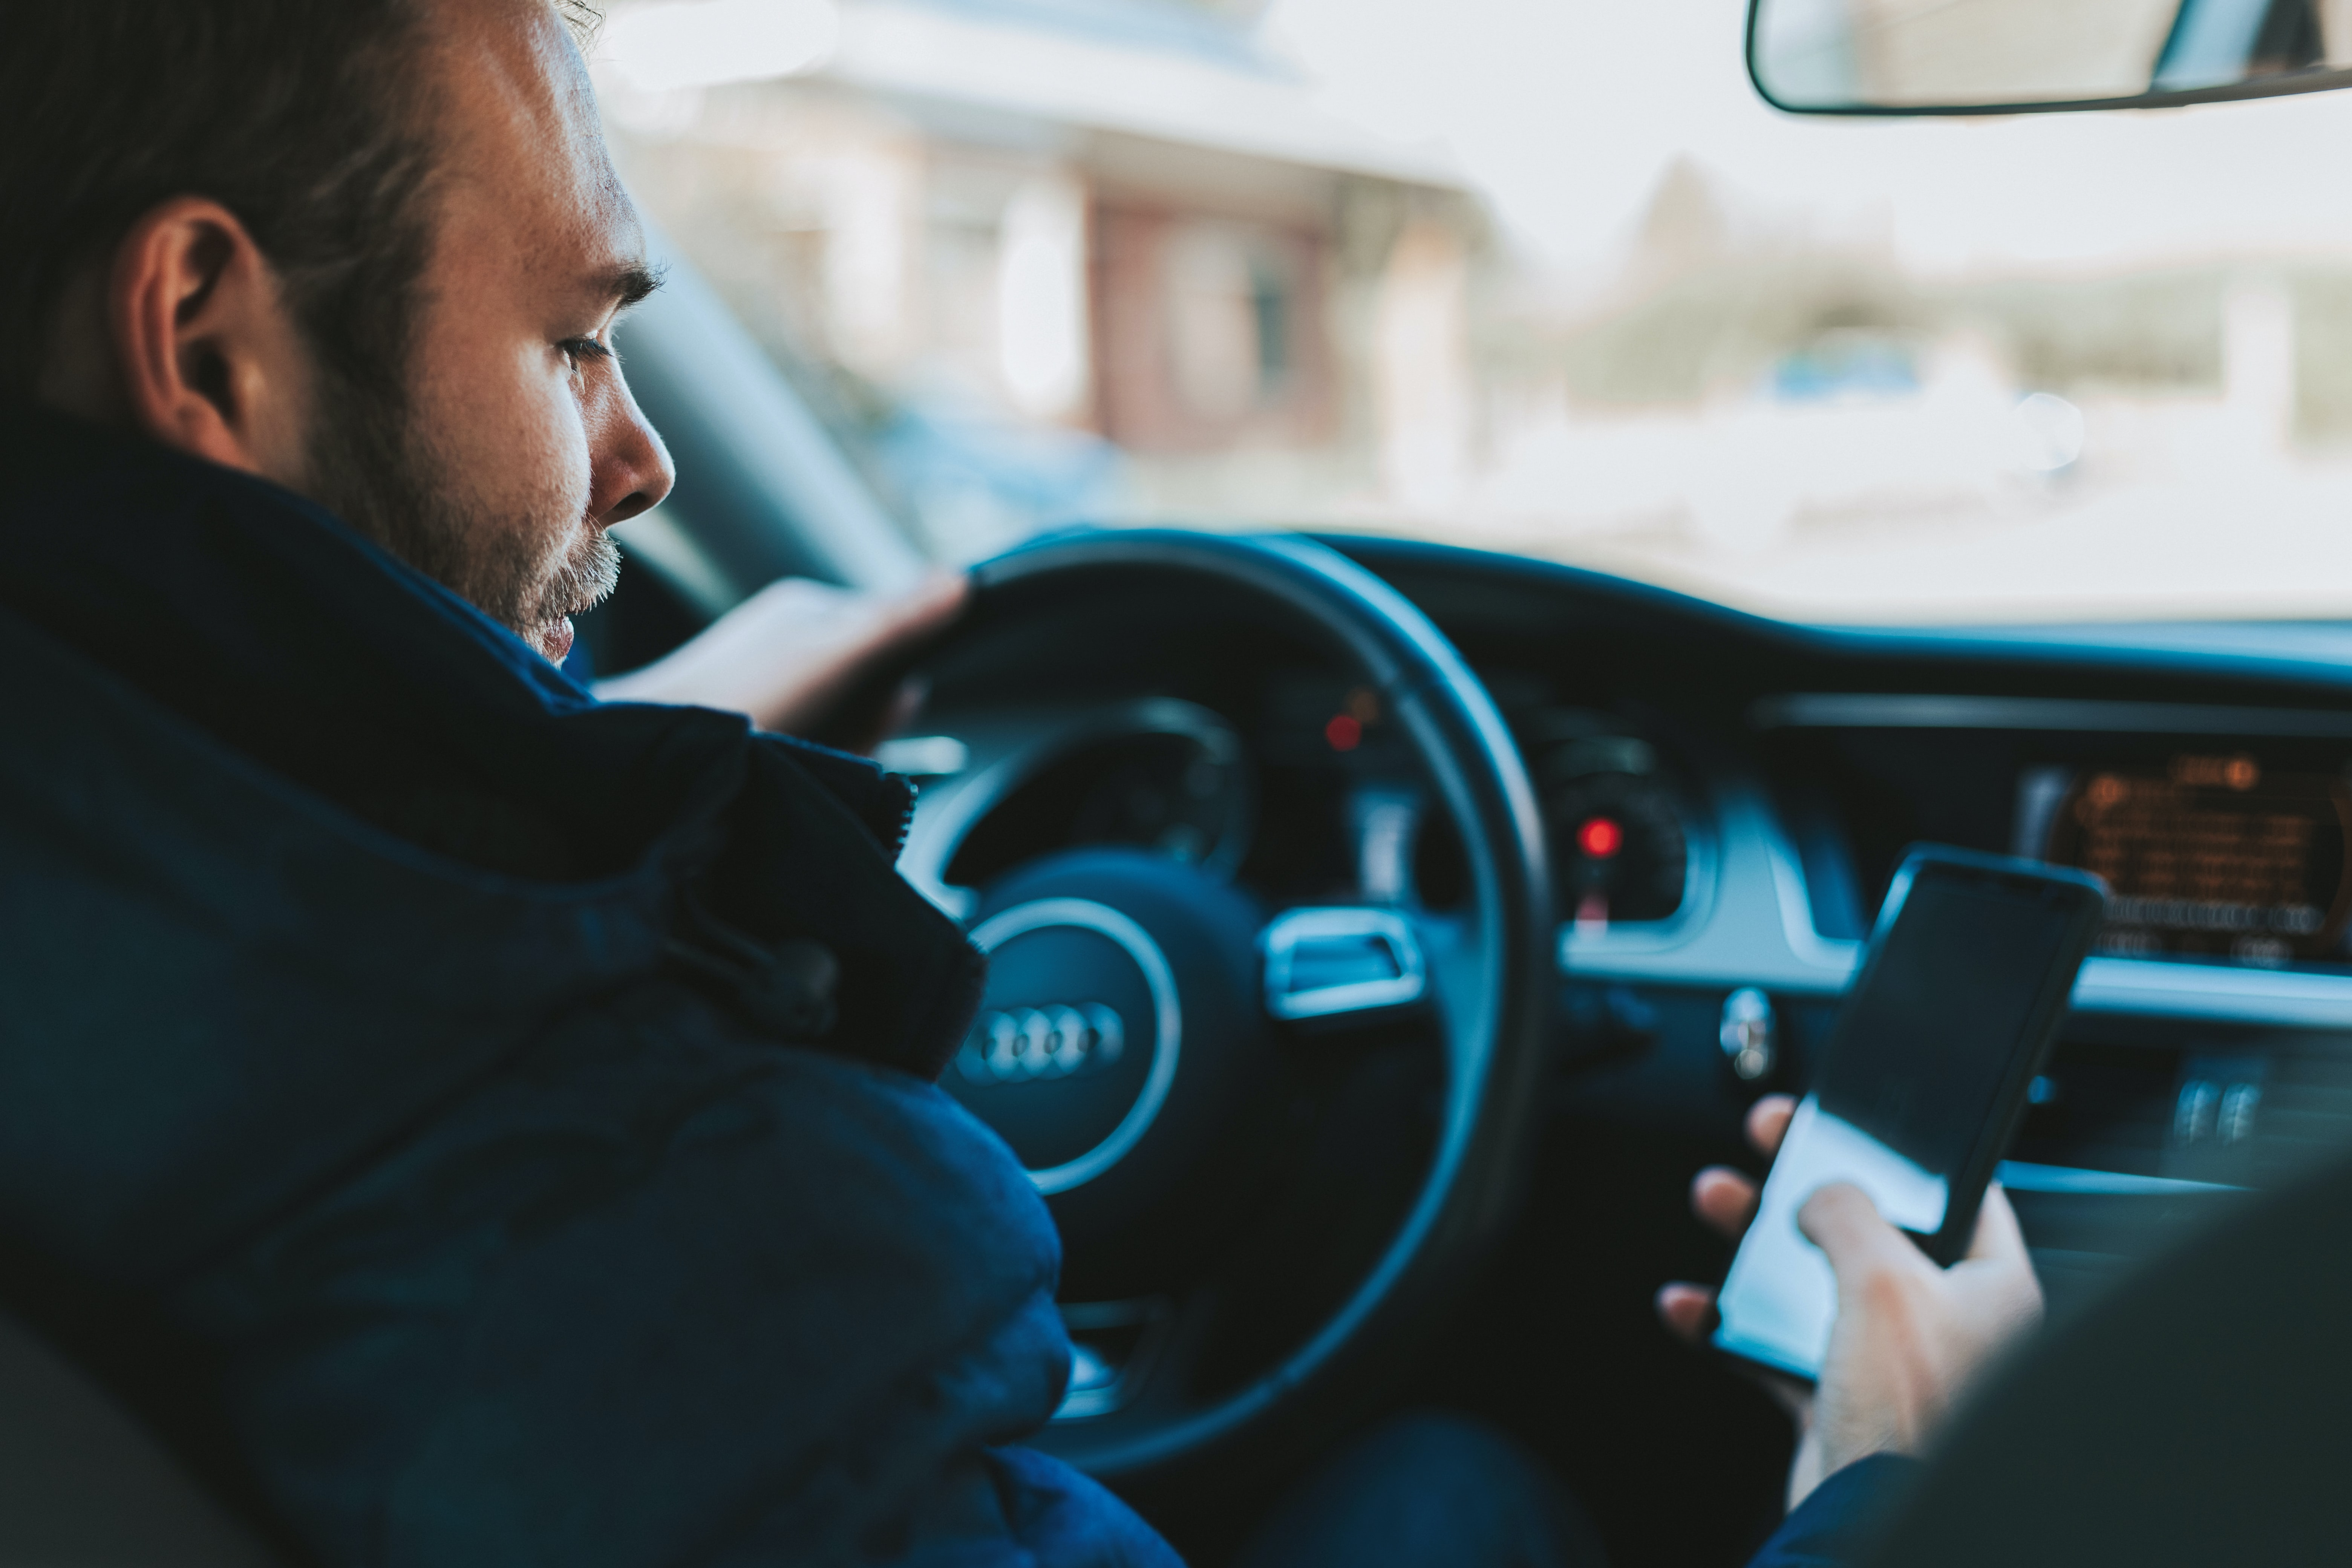 Impact of phone distraction on U.S. drivers